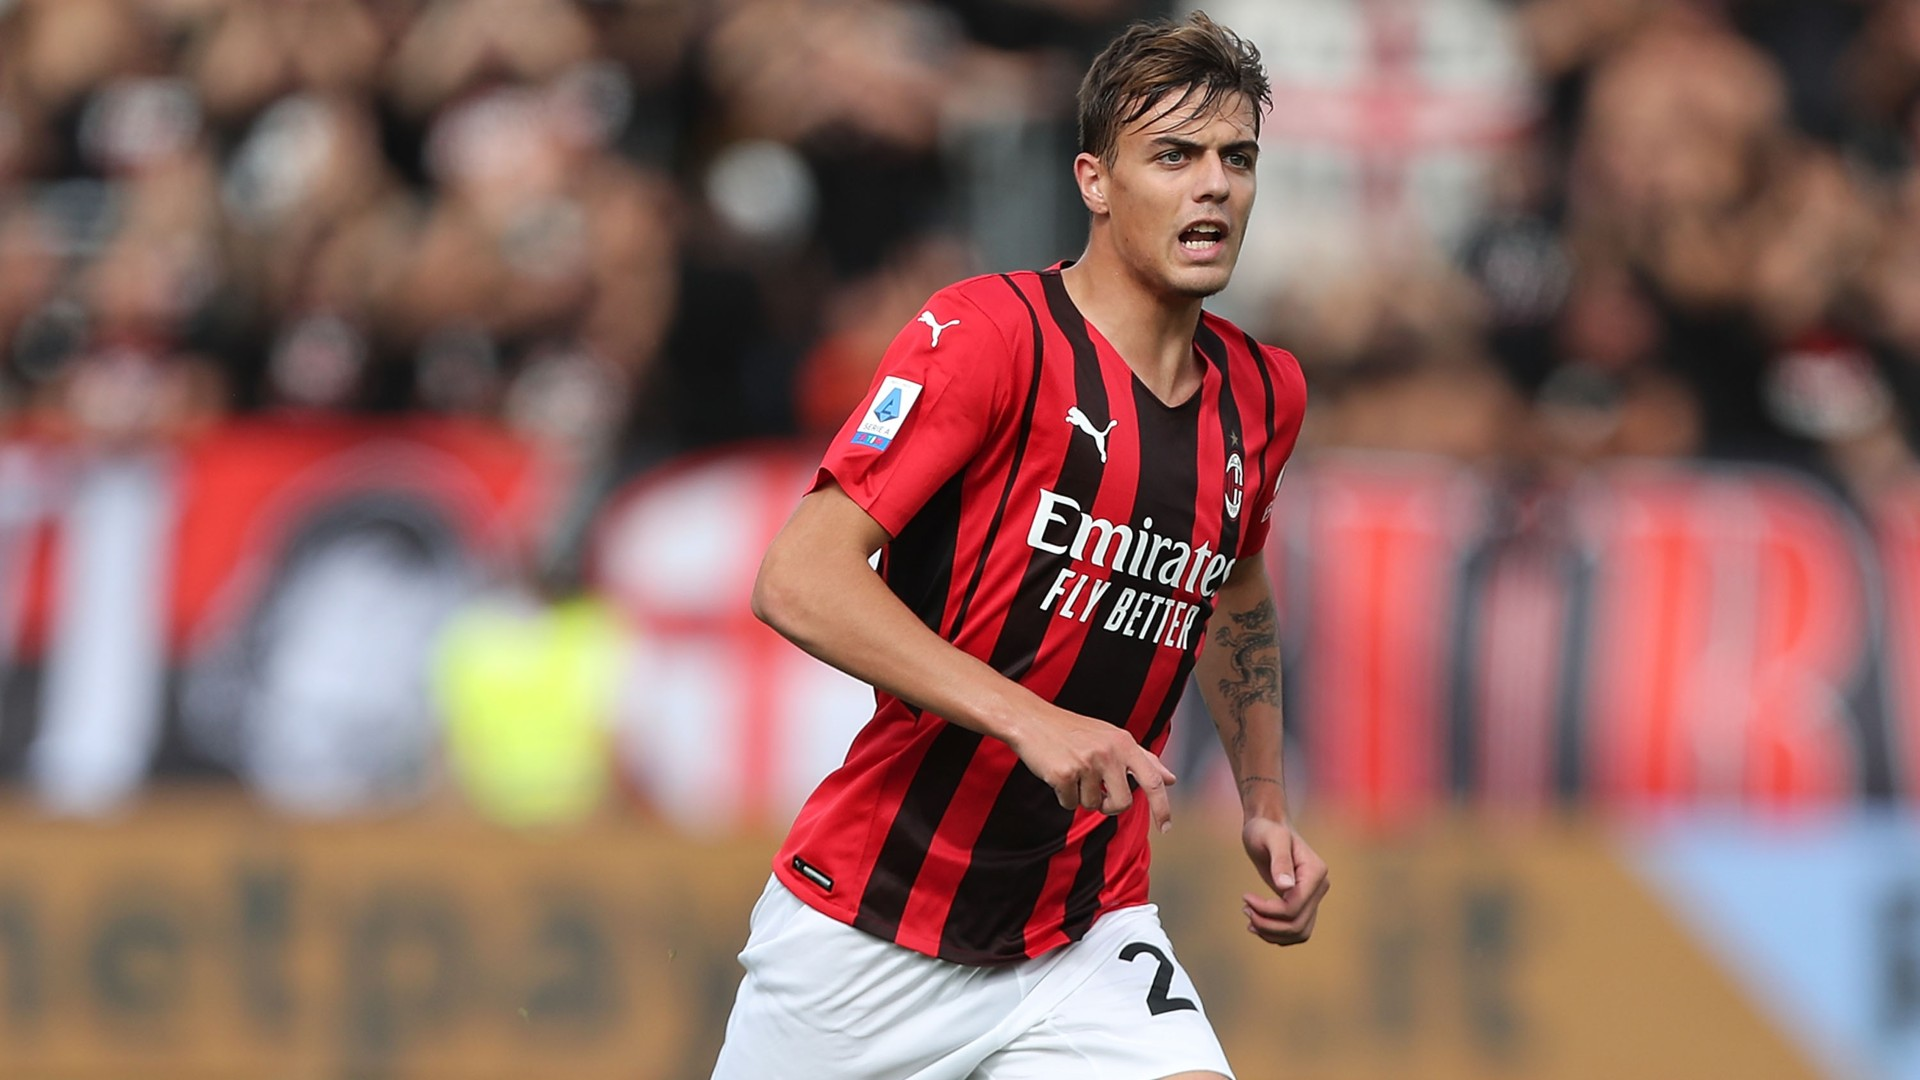 Video: Watch Paolo Maldini's son Daniel score his first goal for AC Milan on full Serie A debut